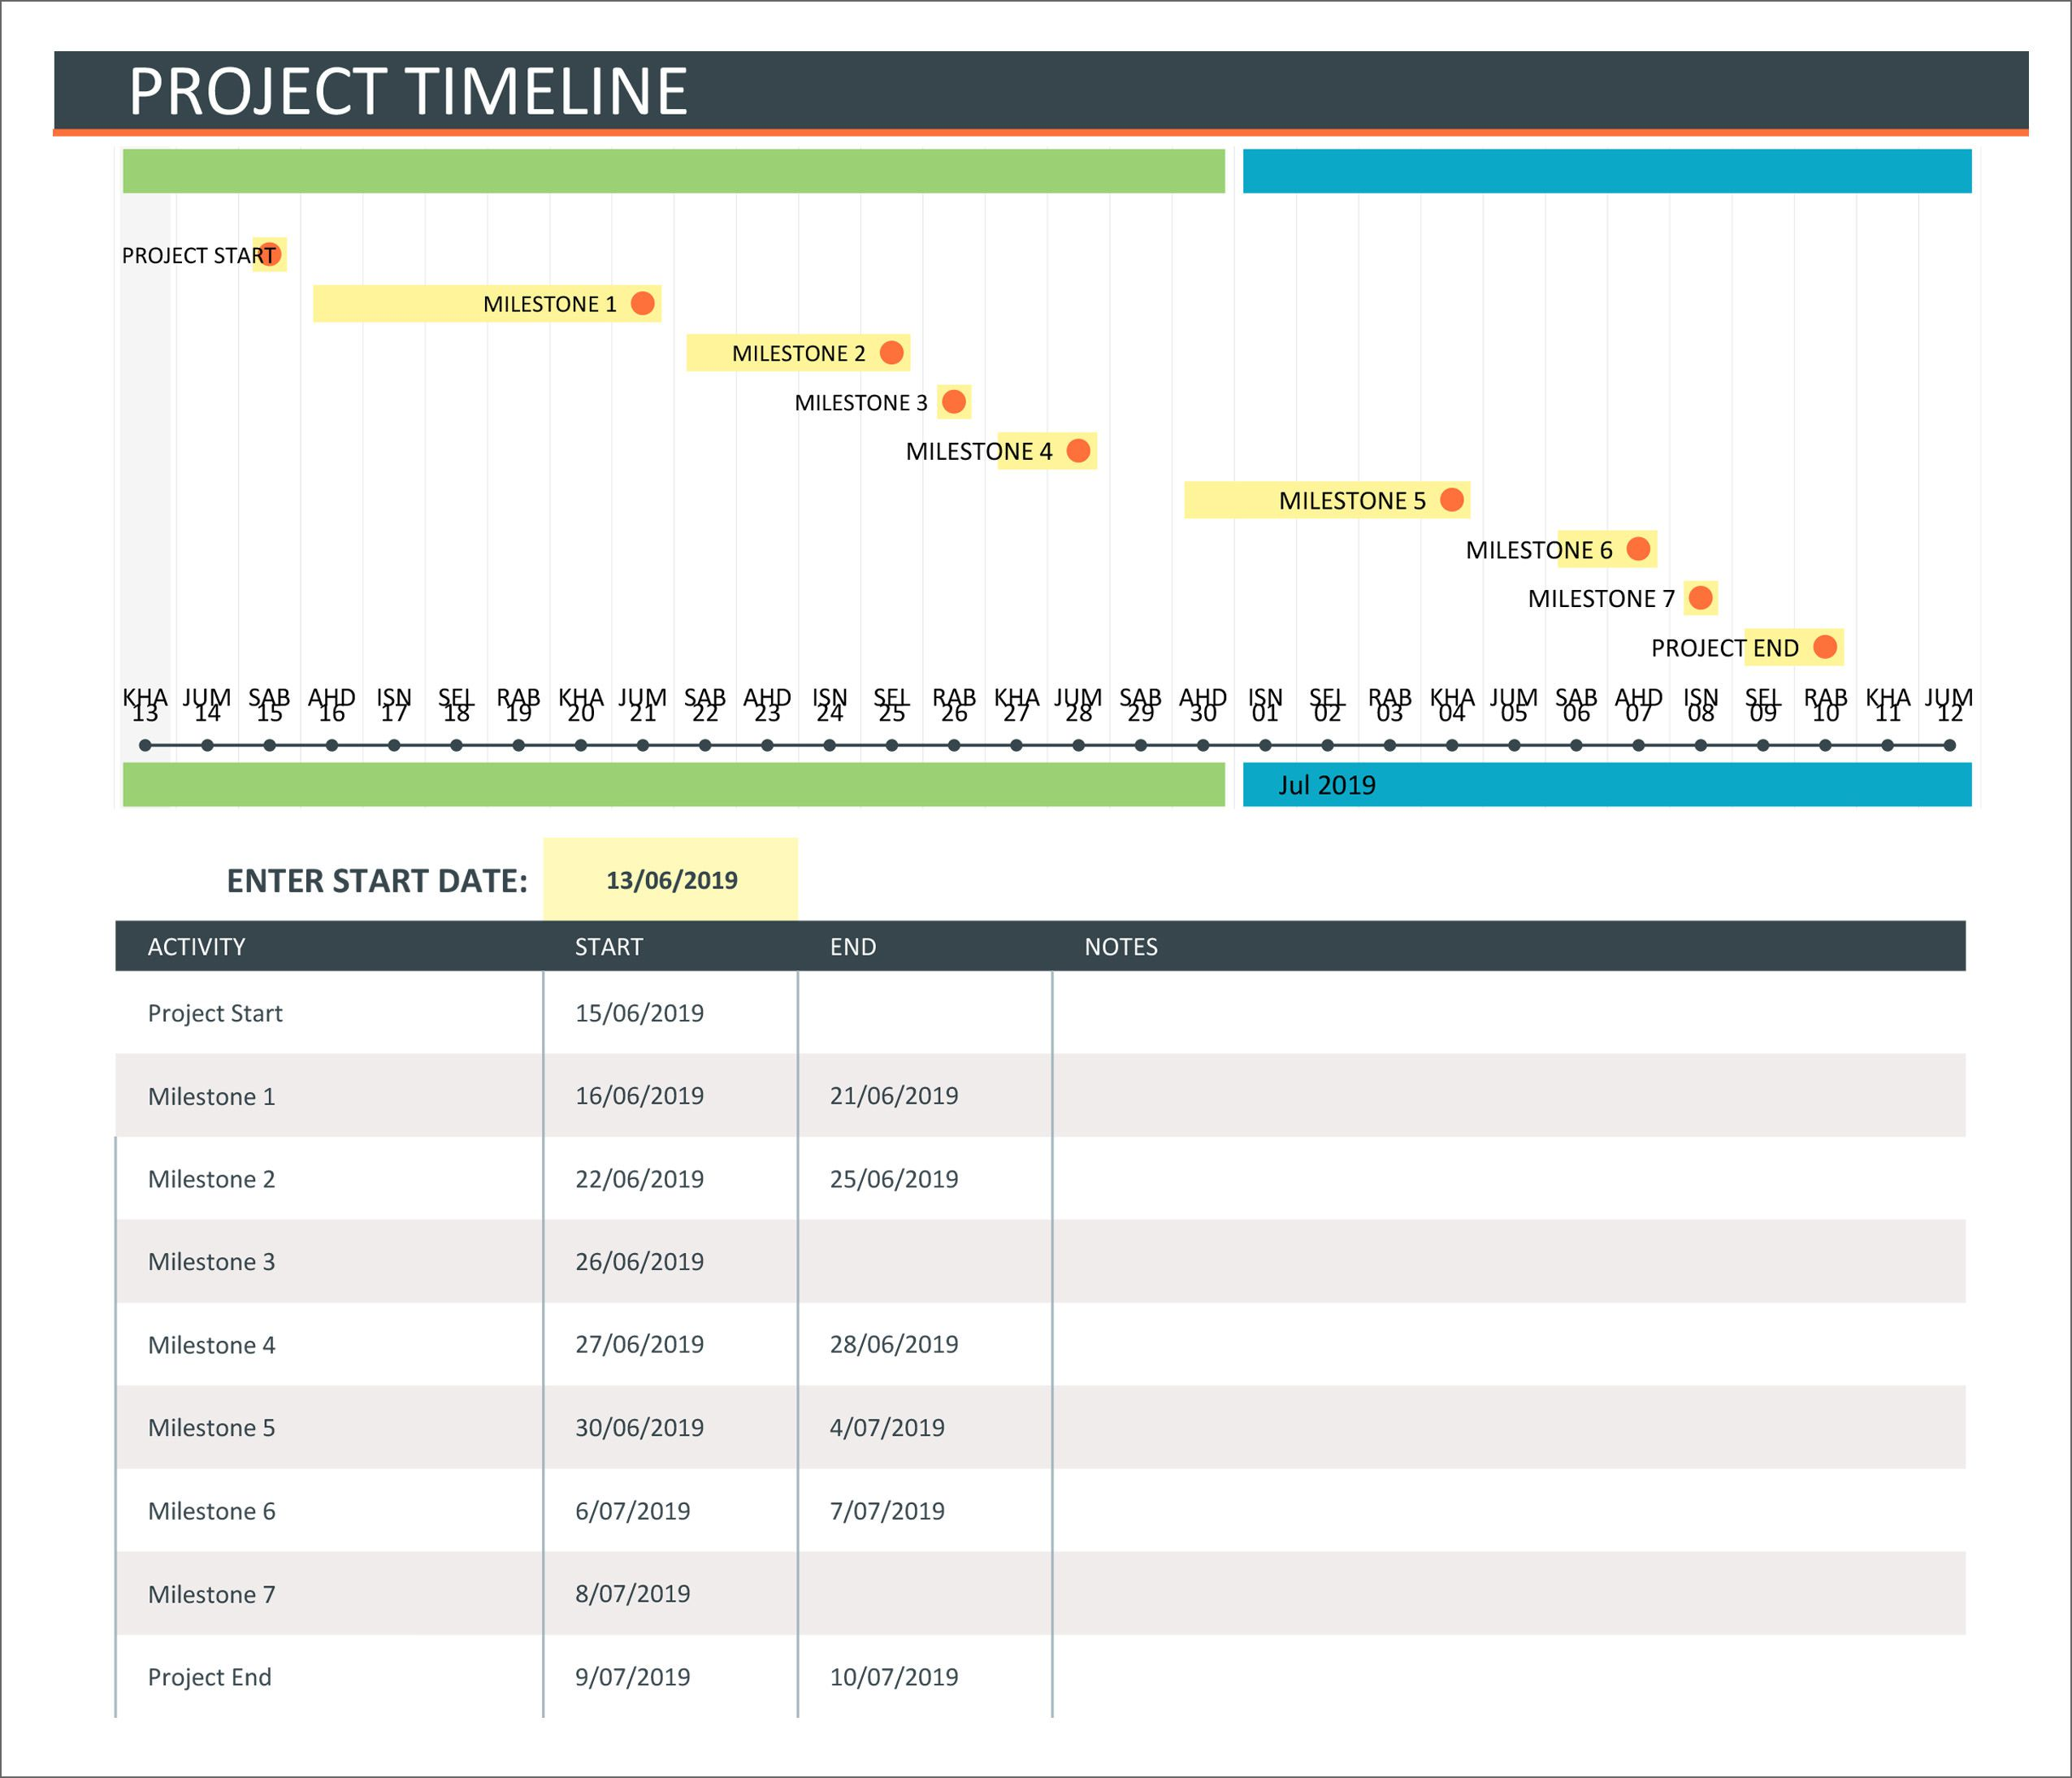 001 Unforgettable Microsoft Excel Timeline Template High Def  Templates Project Free DownloadFull